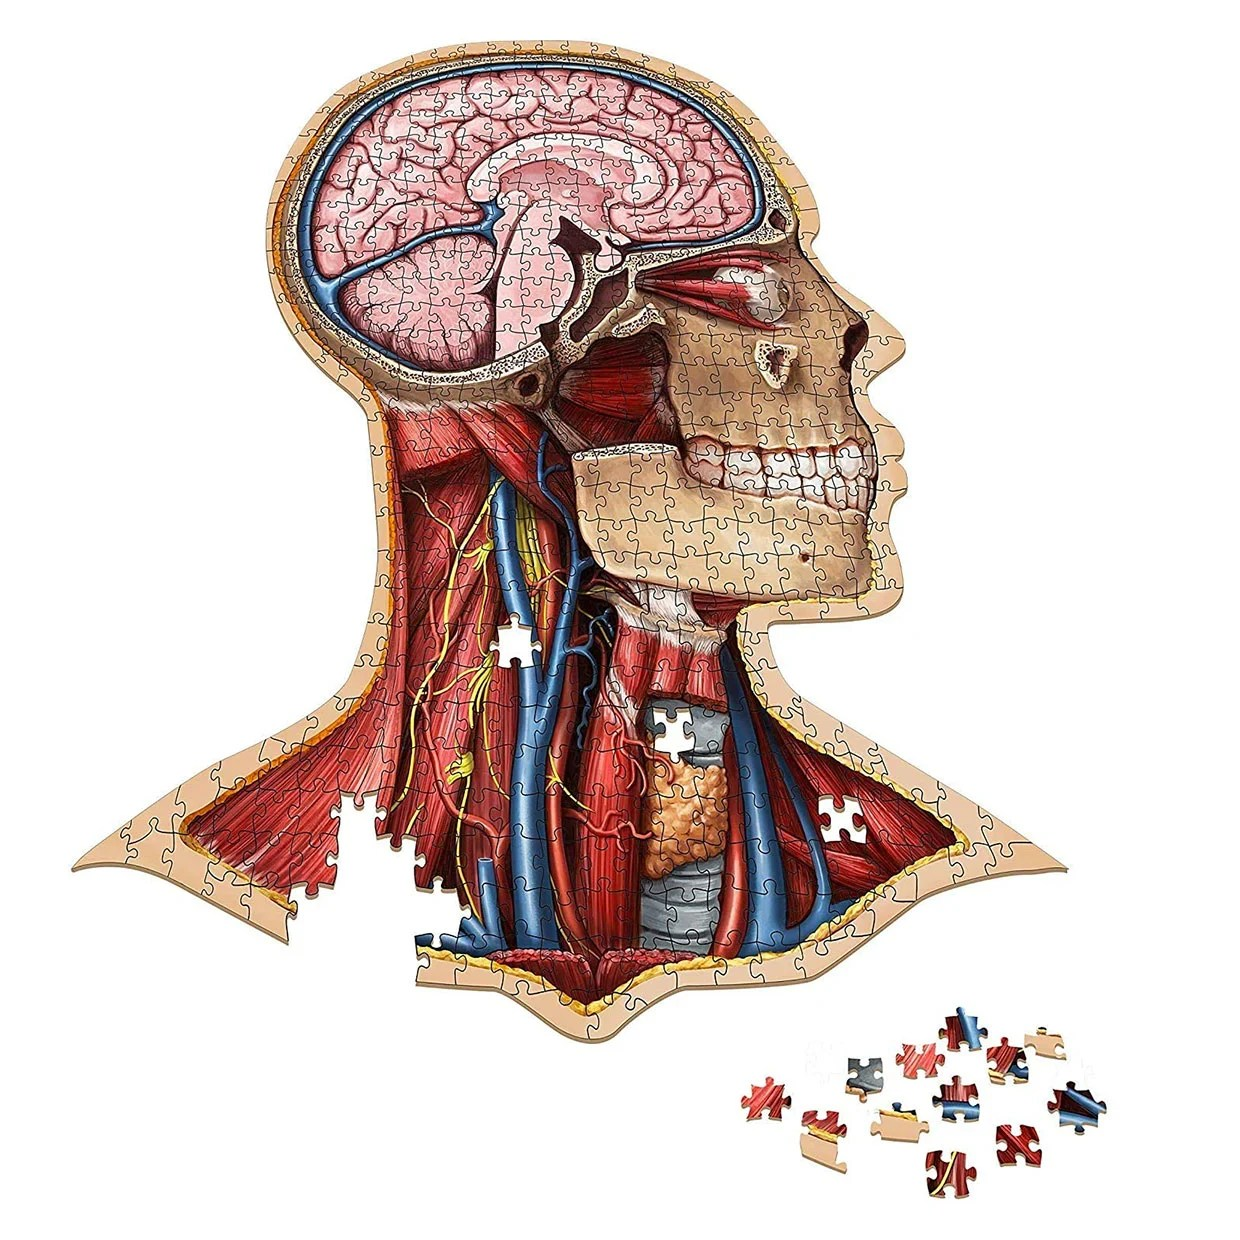 Human Anatomy Jigsaw Puzzles Let You Build Your Insides